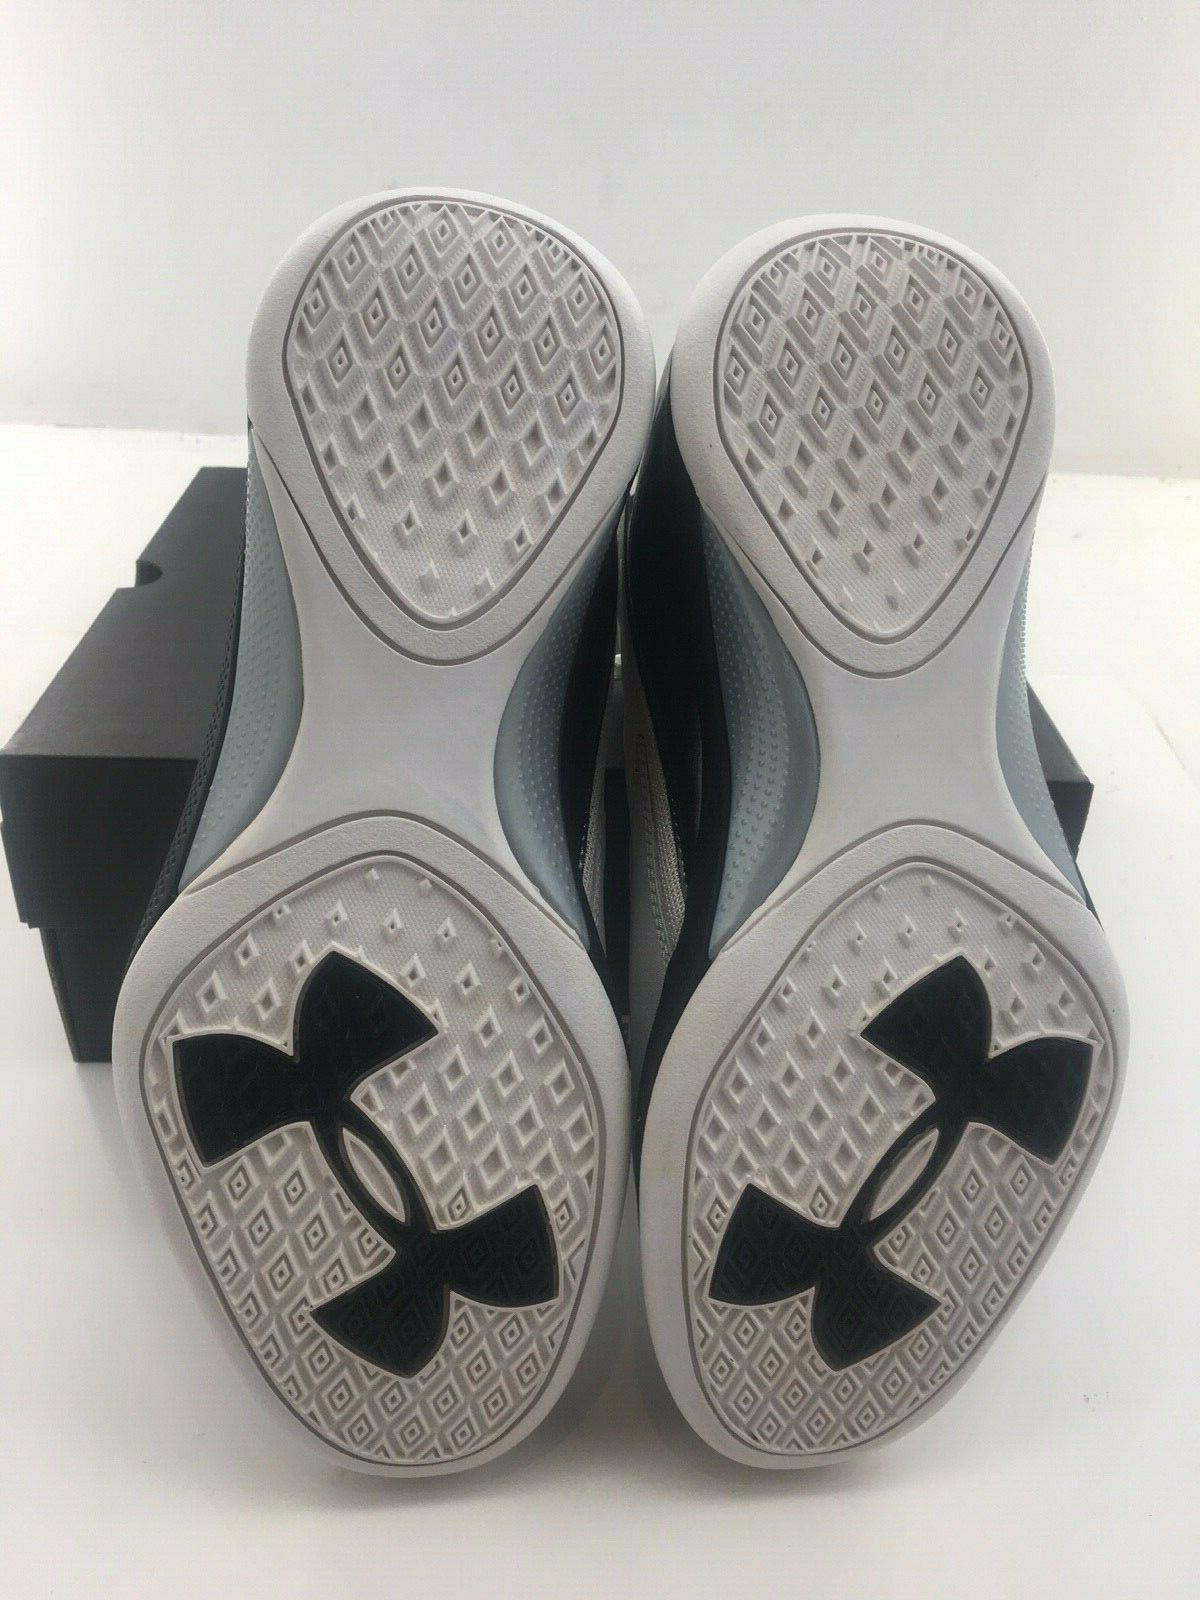 UNDER ARMOUR Basketball Shoes 1269281-101 Wht/Blk 7.5 12